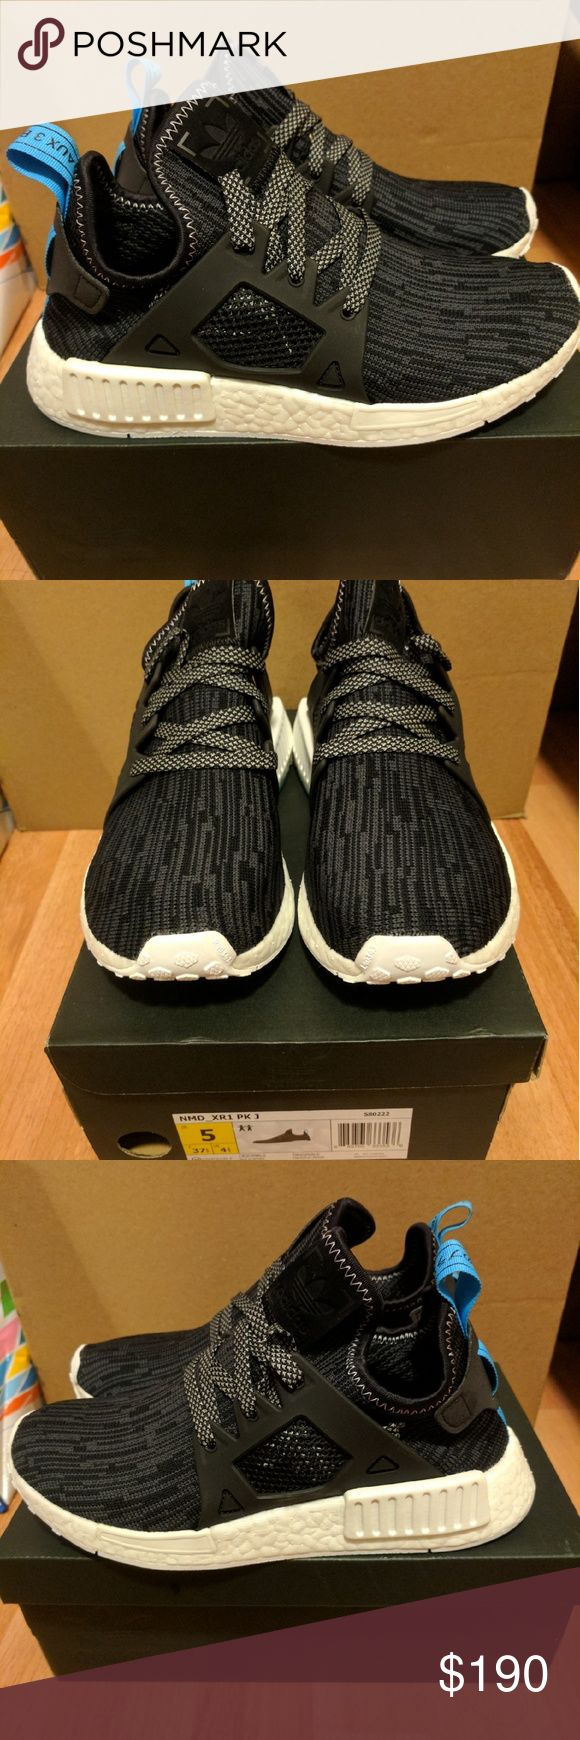 watch e9484 295bf coupon code for new adidas nmd xr1 prime knit utility black sz 6.5 newest  colorway for